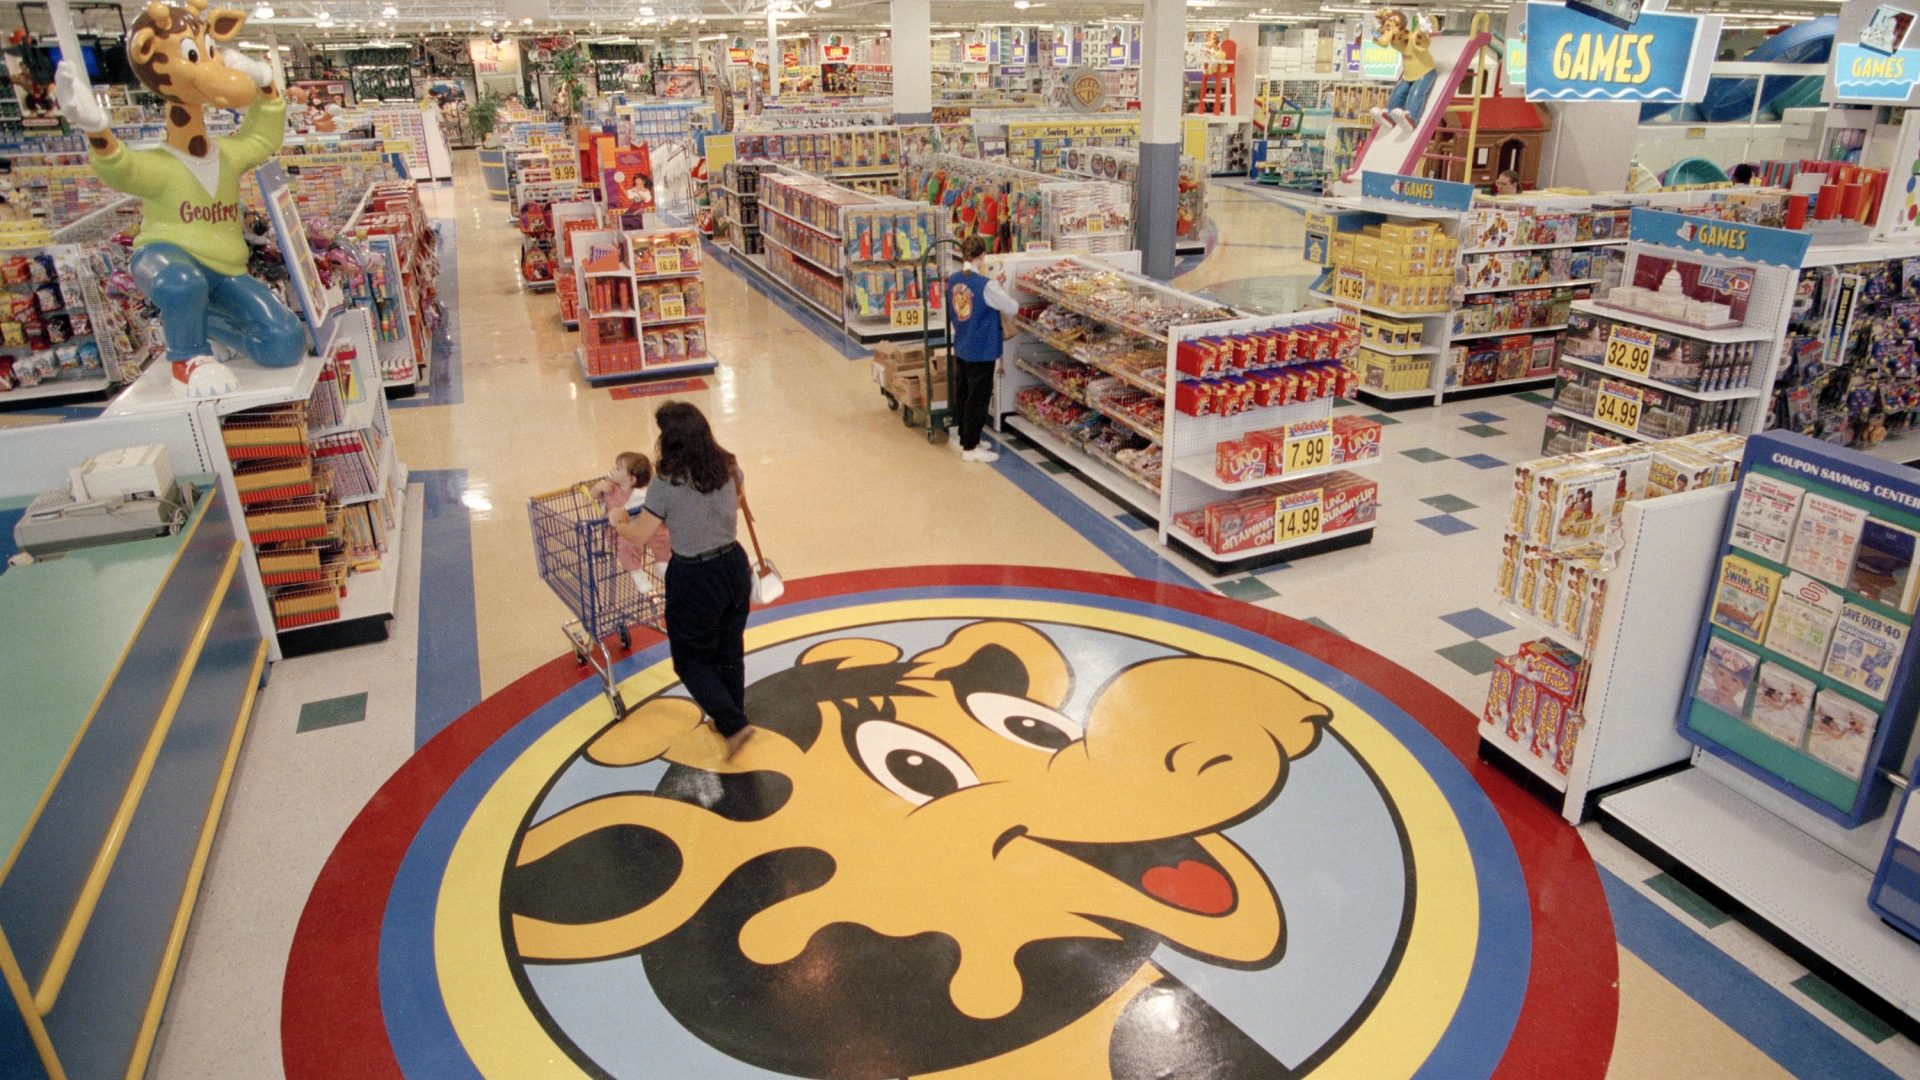 A woman and her child shopping in a New Jersey Toys R Us which features their mascot, Geoffrey the giraffe, 1996. (Credit: Daniel Hulshizer/AP Photo)